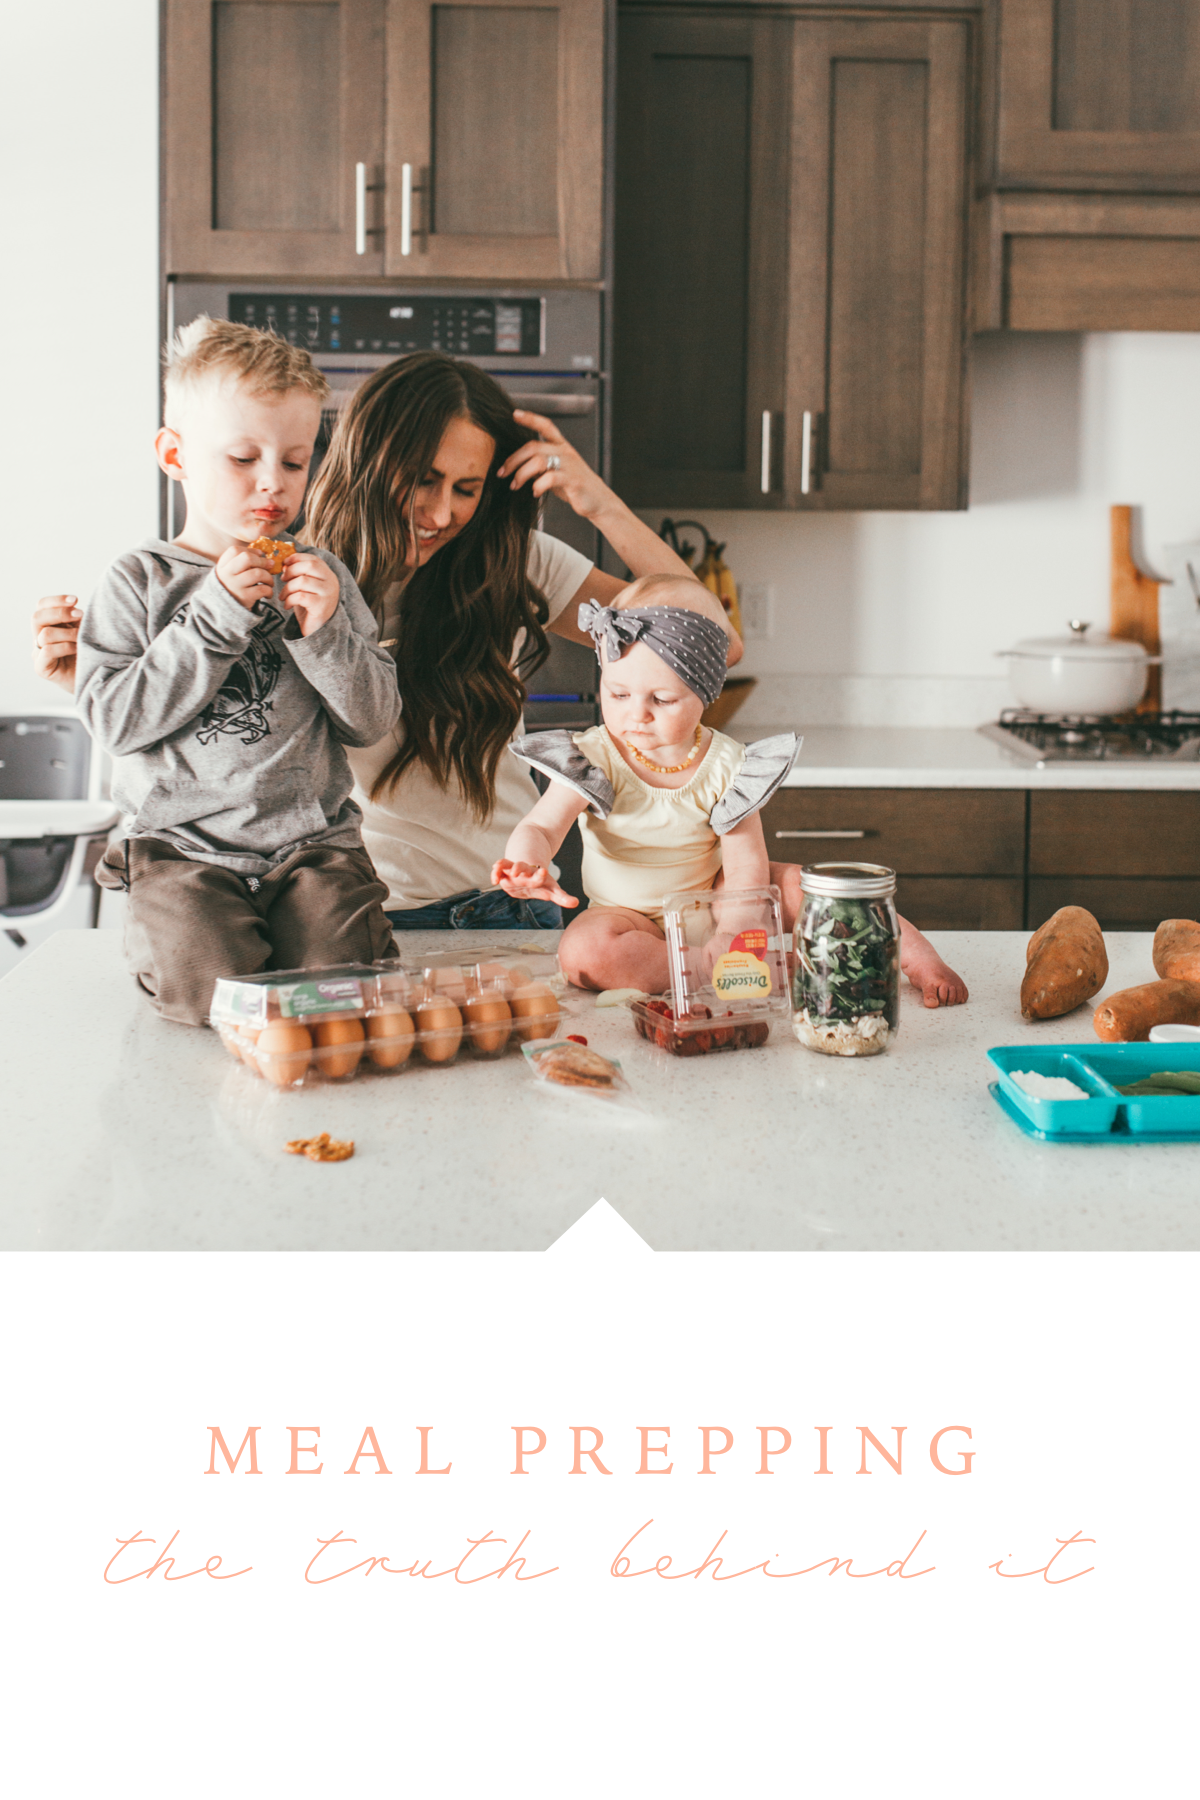 Meal Prepping... Let's talk about if it is really truly worth the time that you put into it and some tips and tricks to making it a little easier.